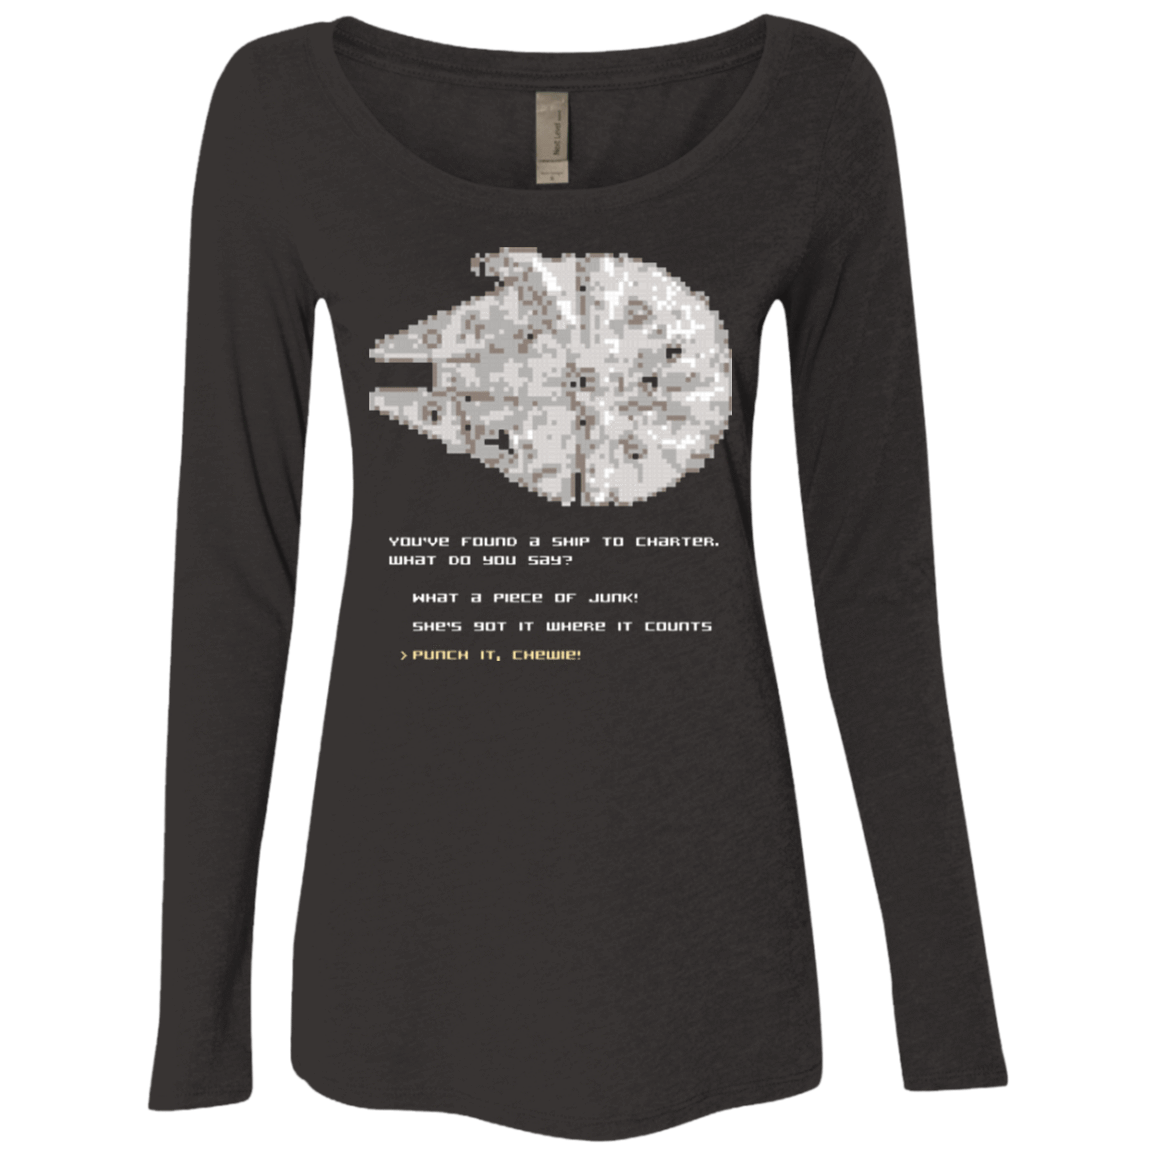 8-Bit Charter Women's Triblend Long Sleeve Shirt